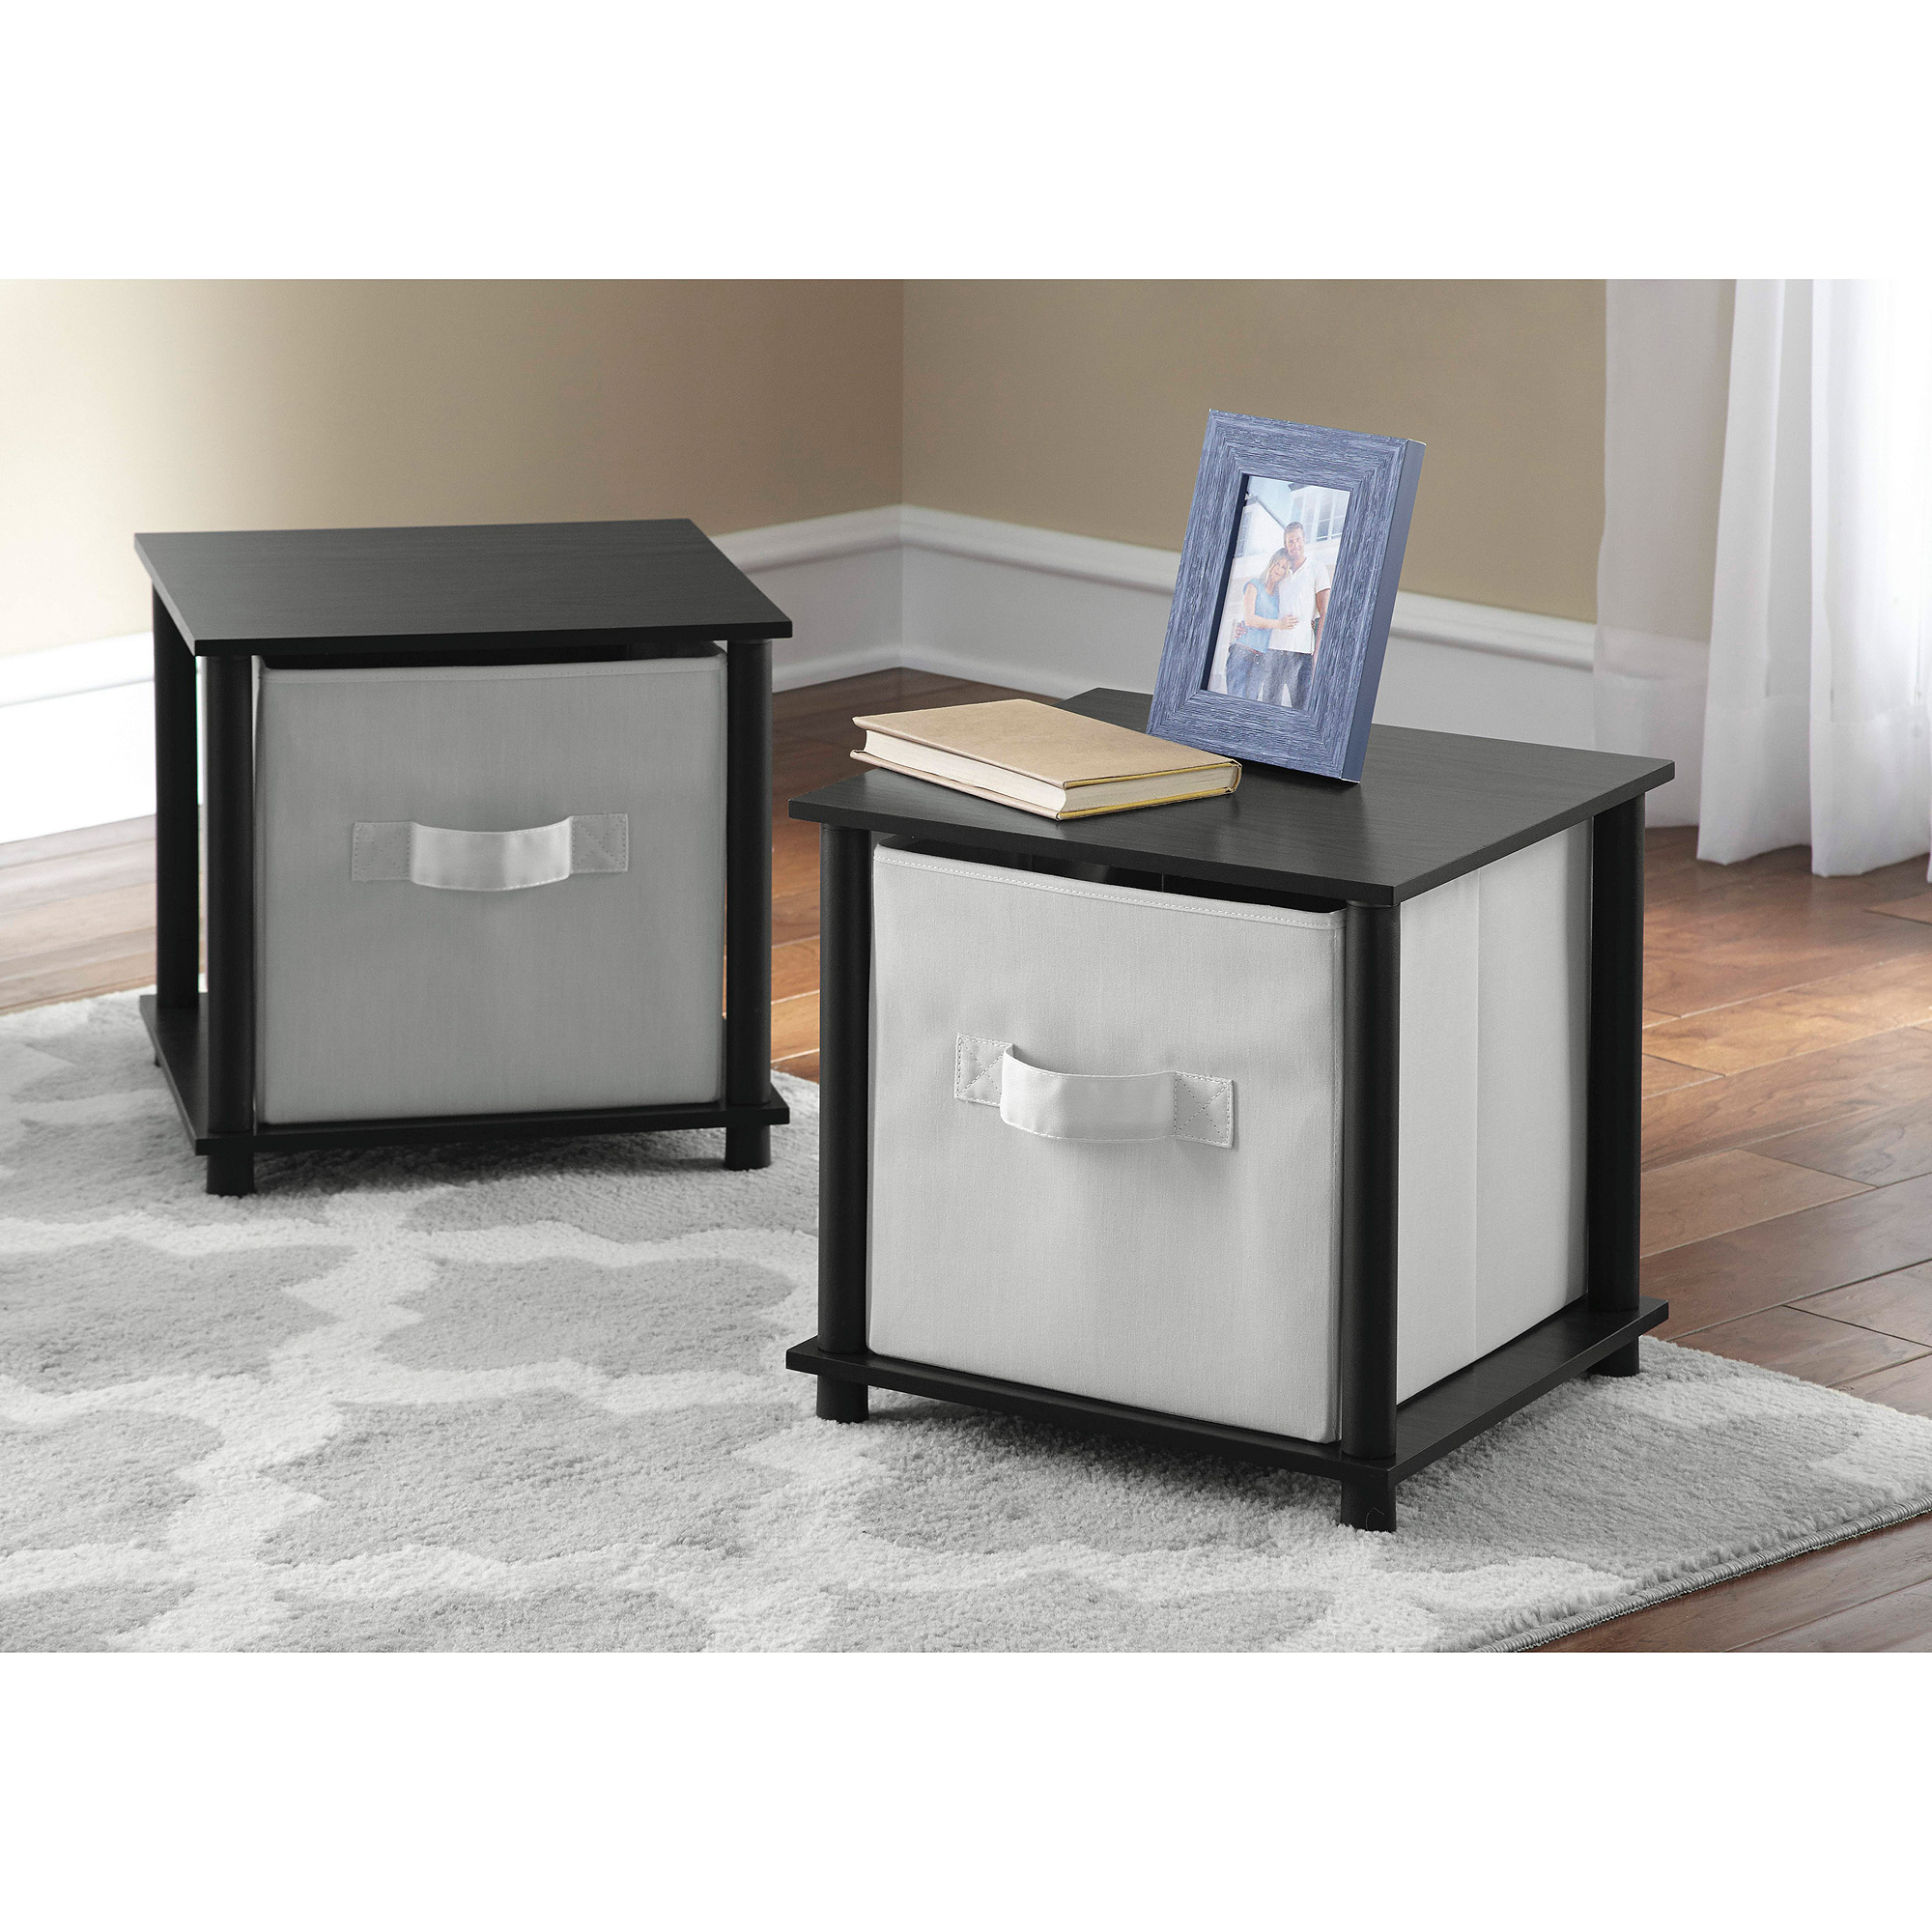 Mainstays No Tools Single Cube Storage Shelf Side Tables  Set of 2   Walmart  com. Mainstays No Tools Single Cube Storage Shelf Side Tables  Set of 2